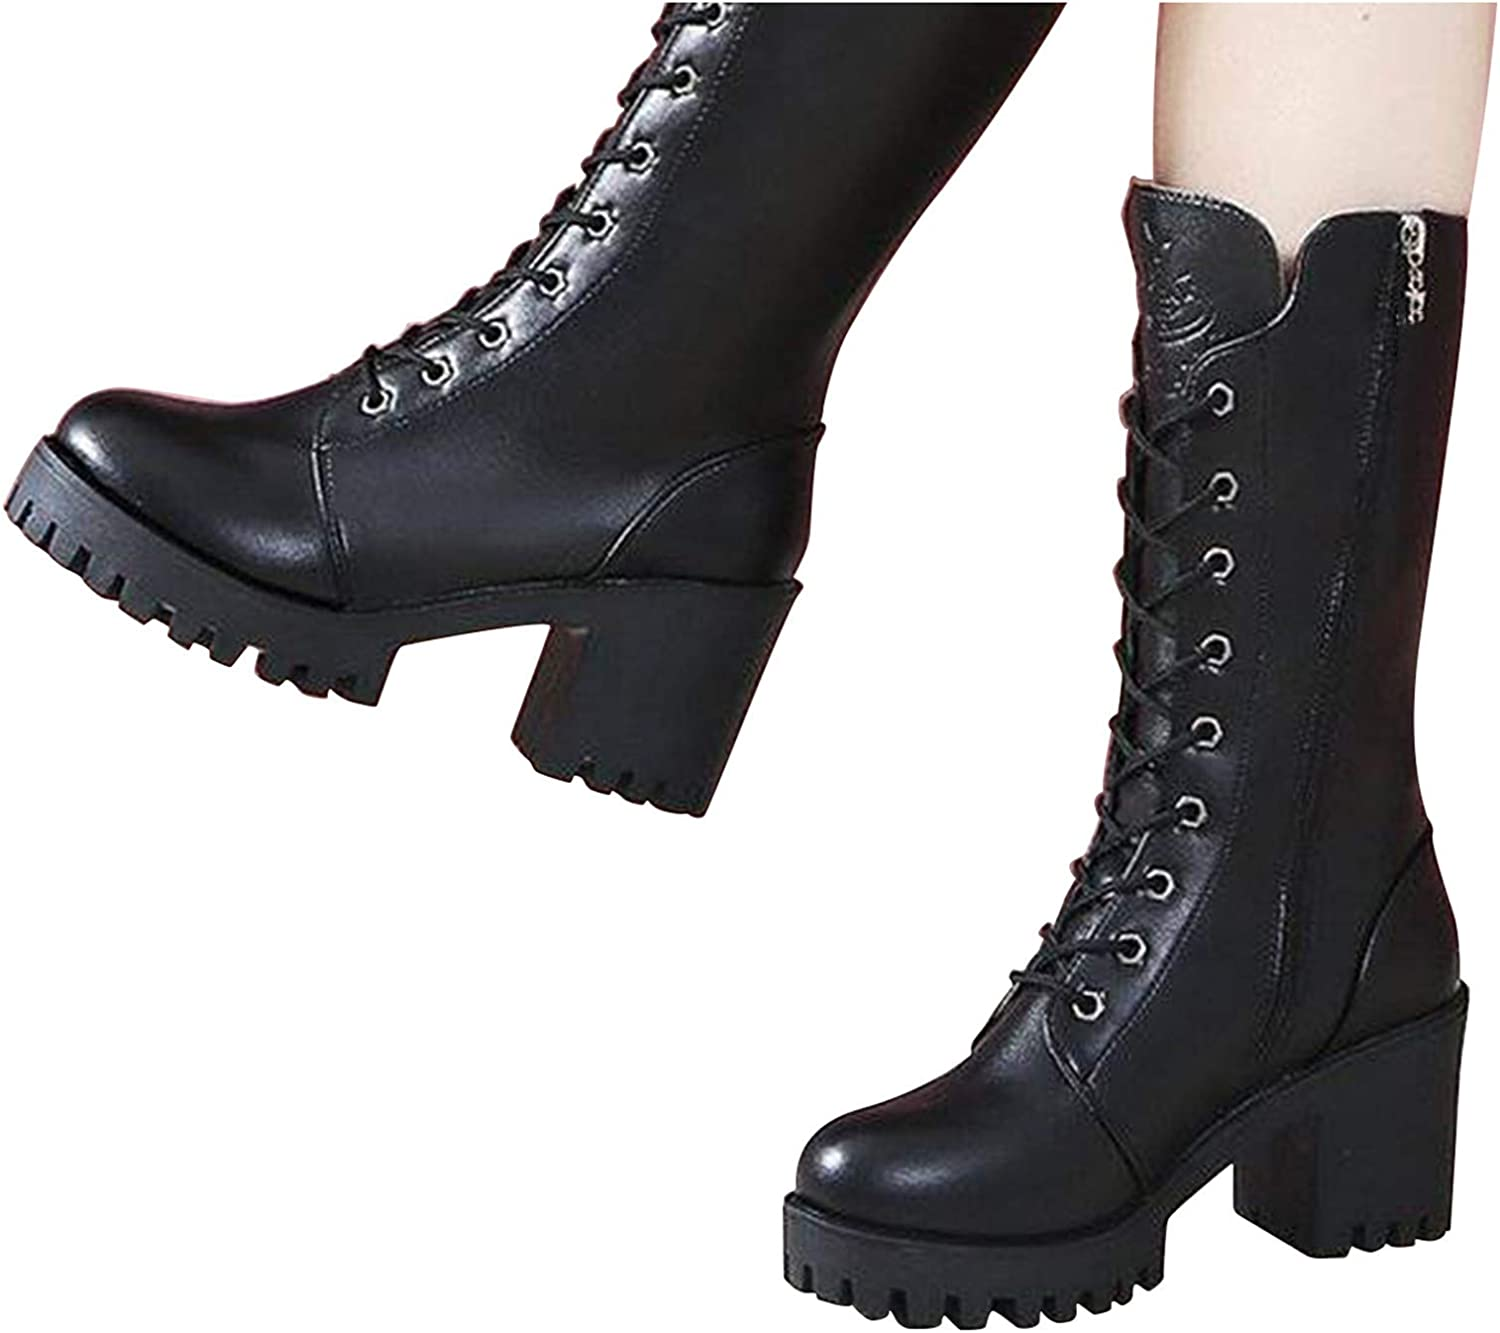 kakina Women's Mid Calf Boots Winter Lace Up Mid Calf Military C